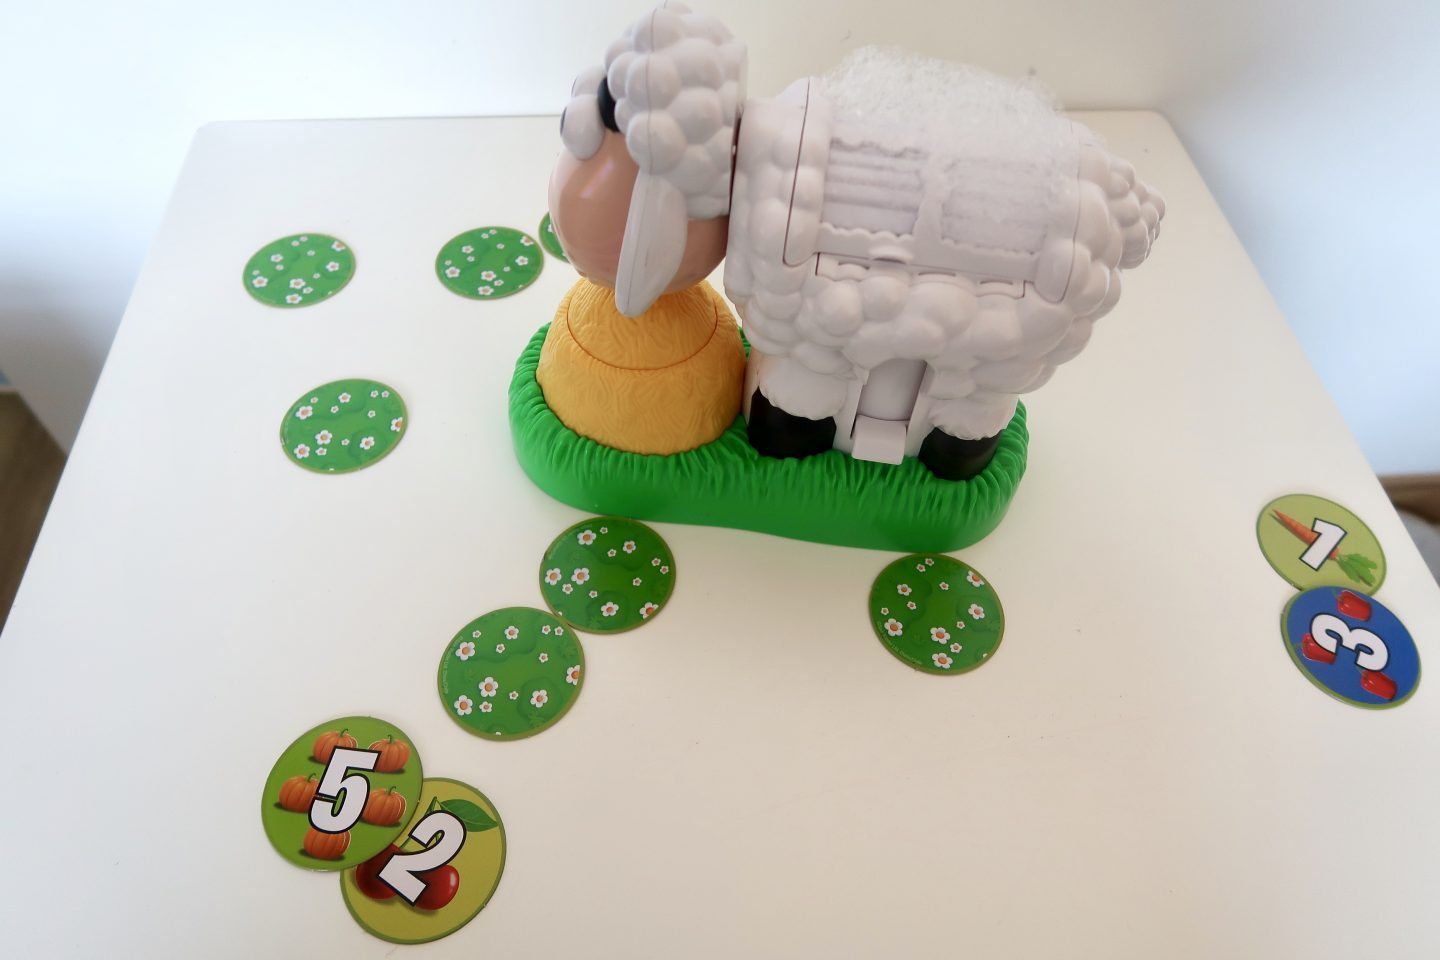 BaaBaa Bubbles sheep surrounded by green tiles, plus some tiles turned over each with a number on them